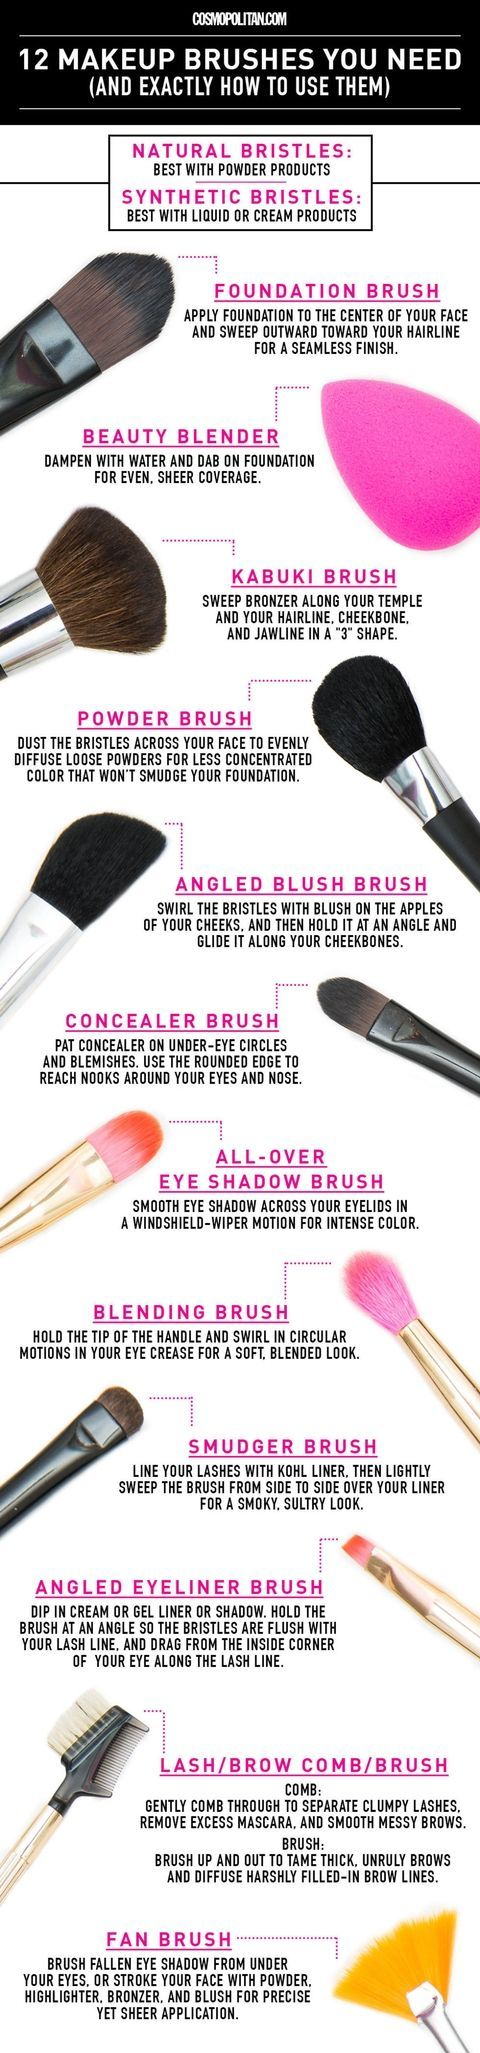 eye makeup brush guide. 12 makeup brushes you need and exactly how to use them eye brush guide